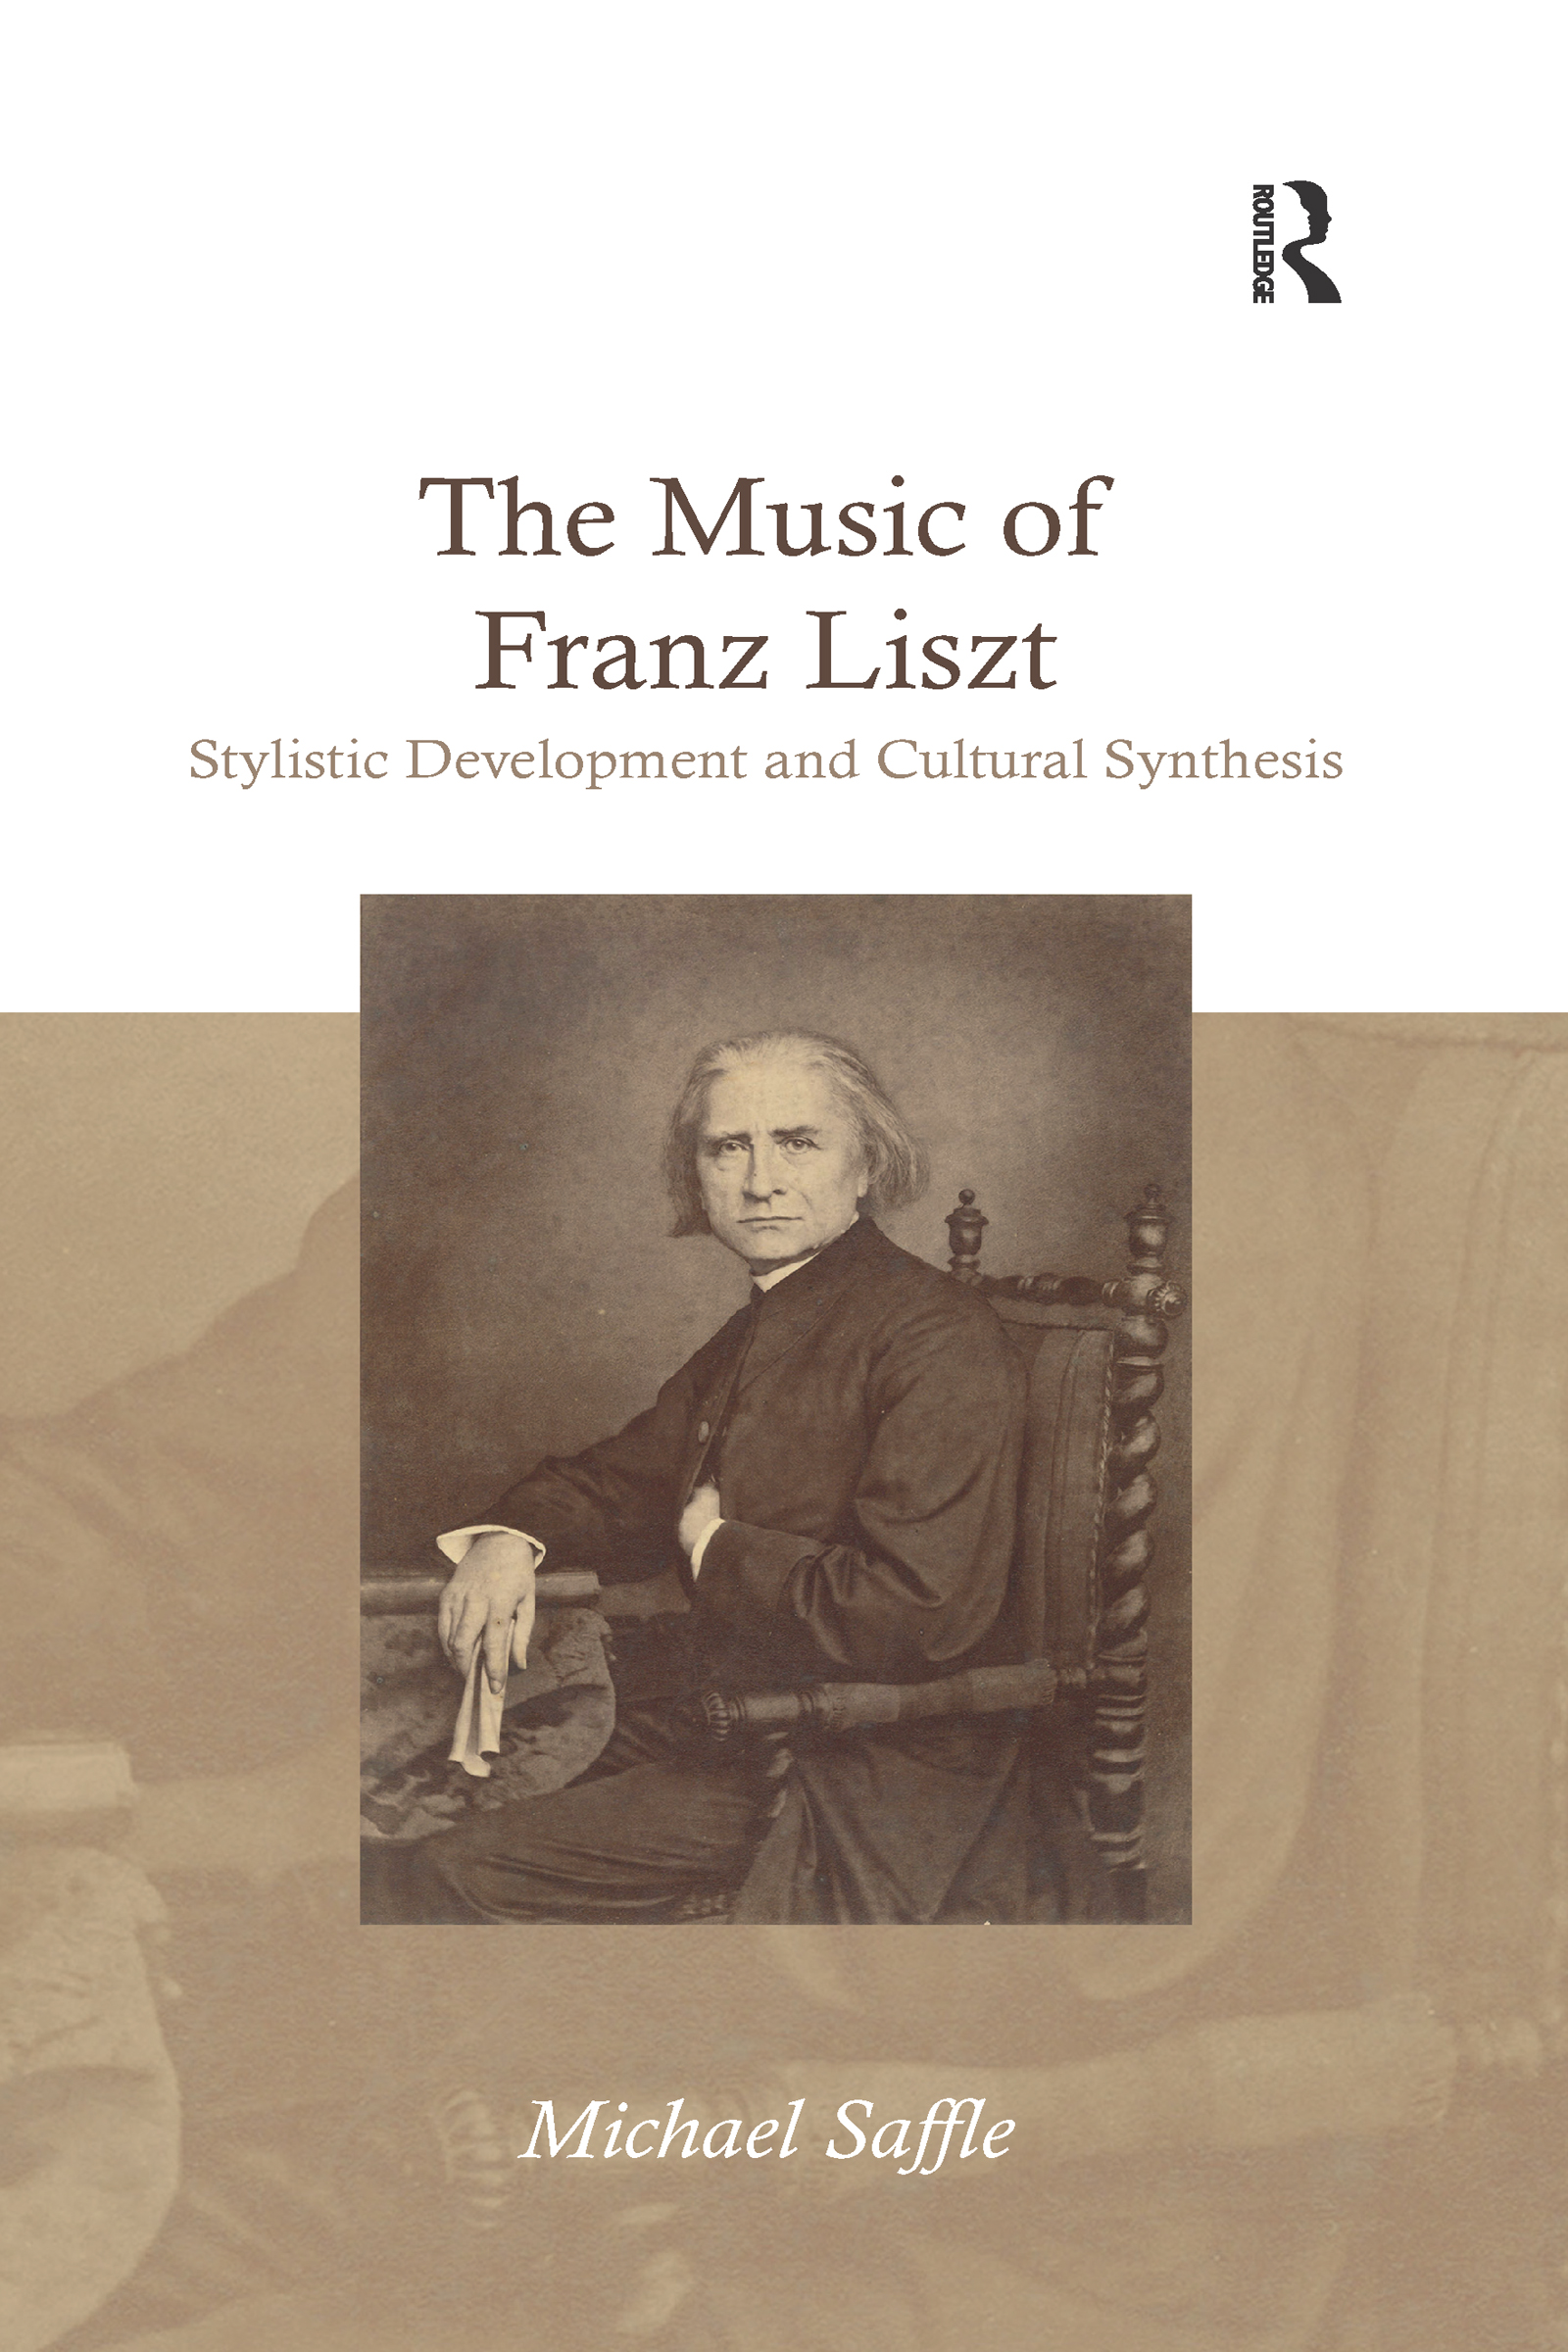 The Music of Franz Liszt